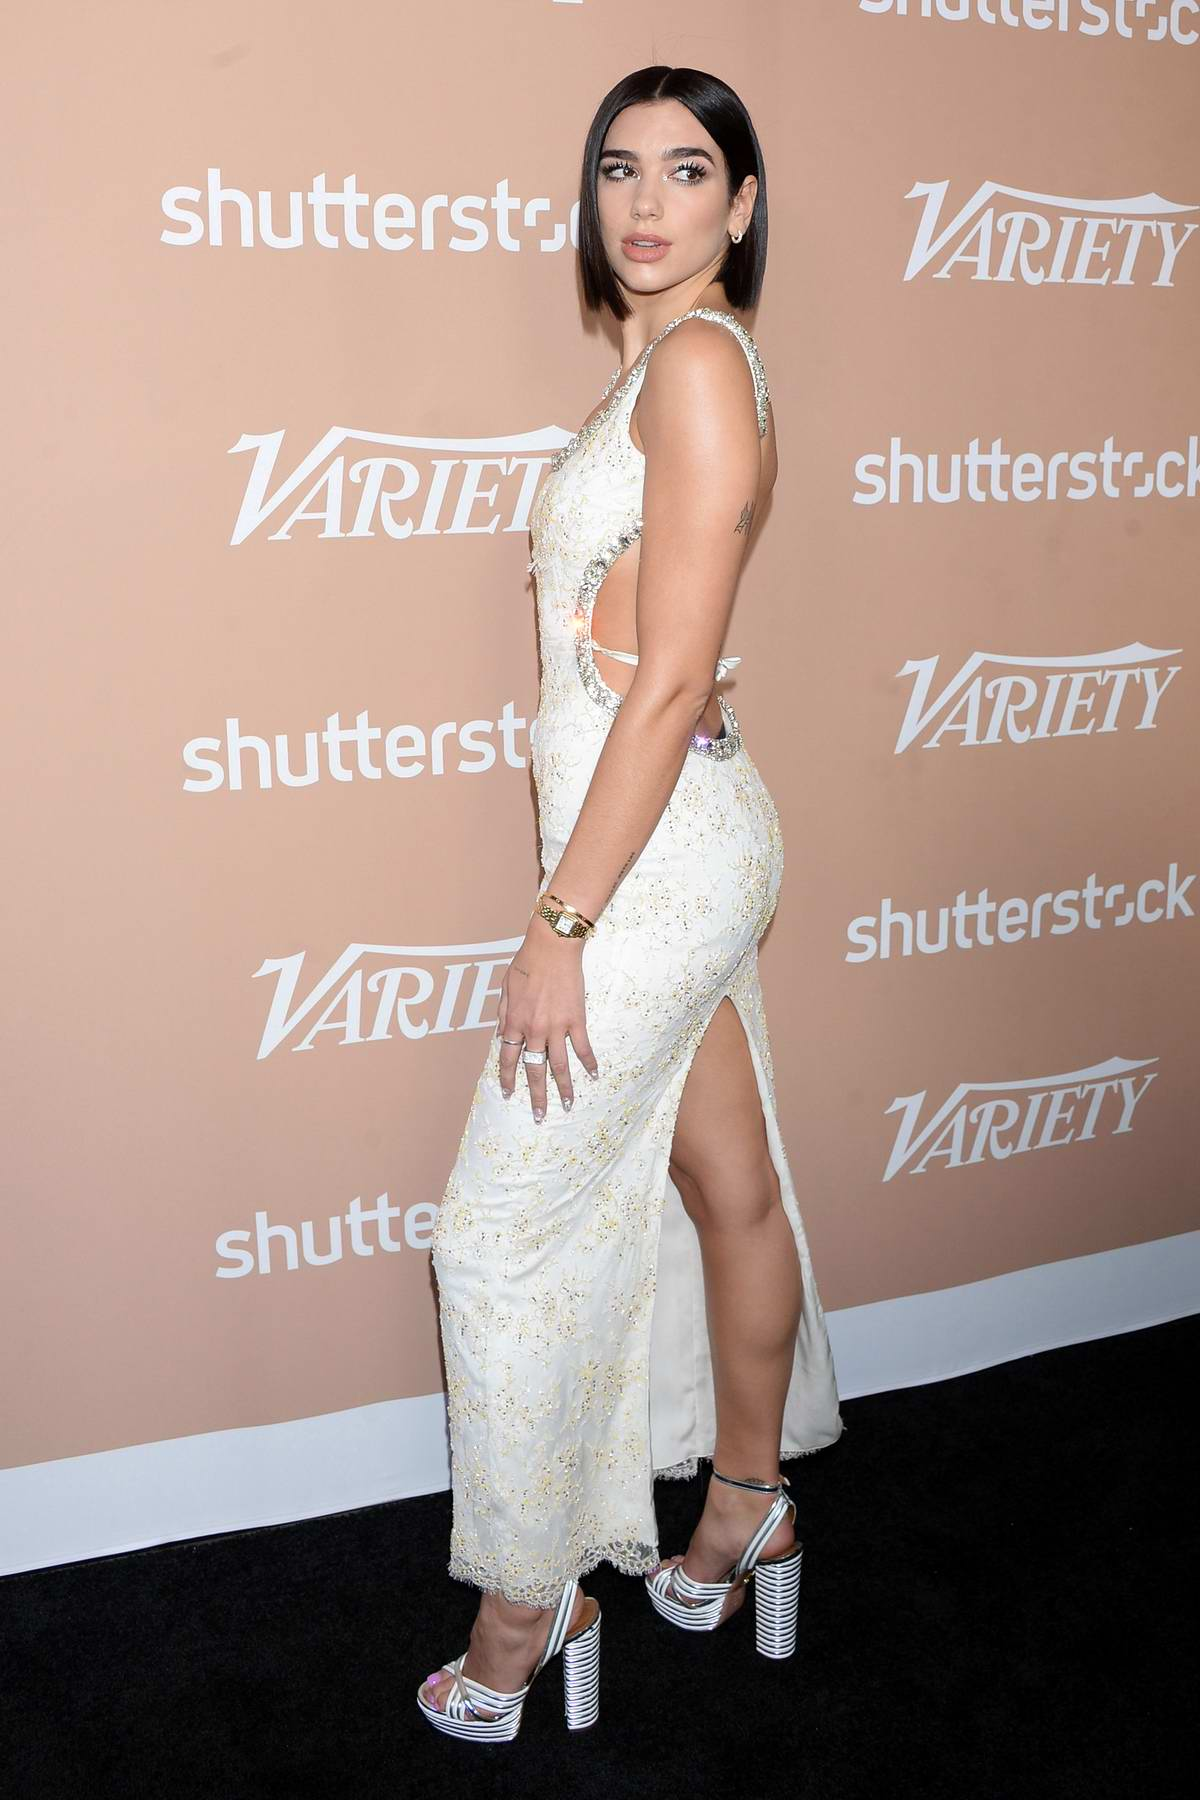 Dua Lipa attends Variety Hitmakers Brunch at the Sunset Tower Hotel in Los Angeles